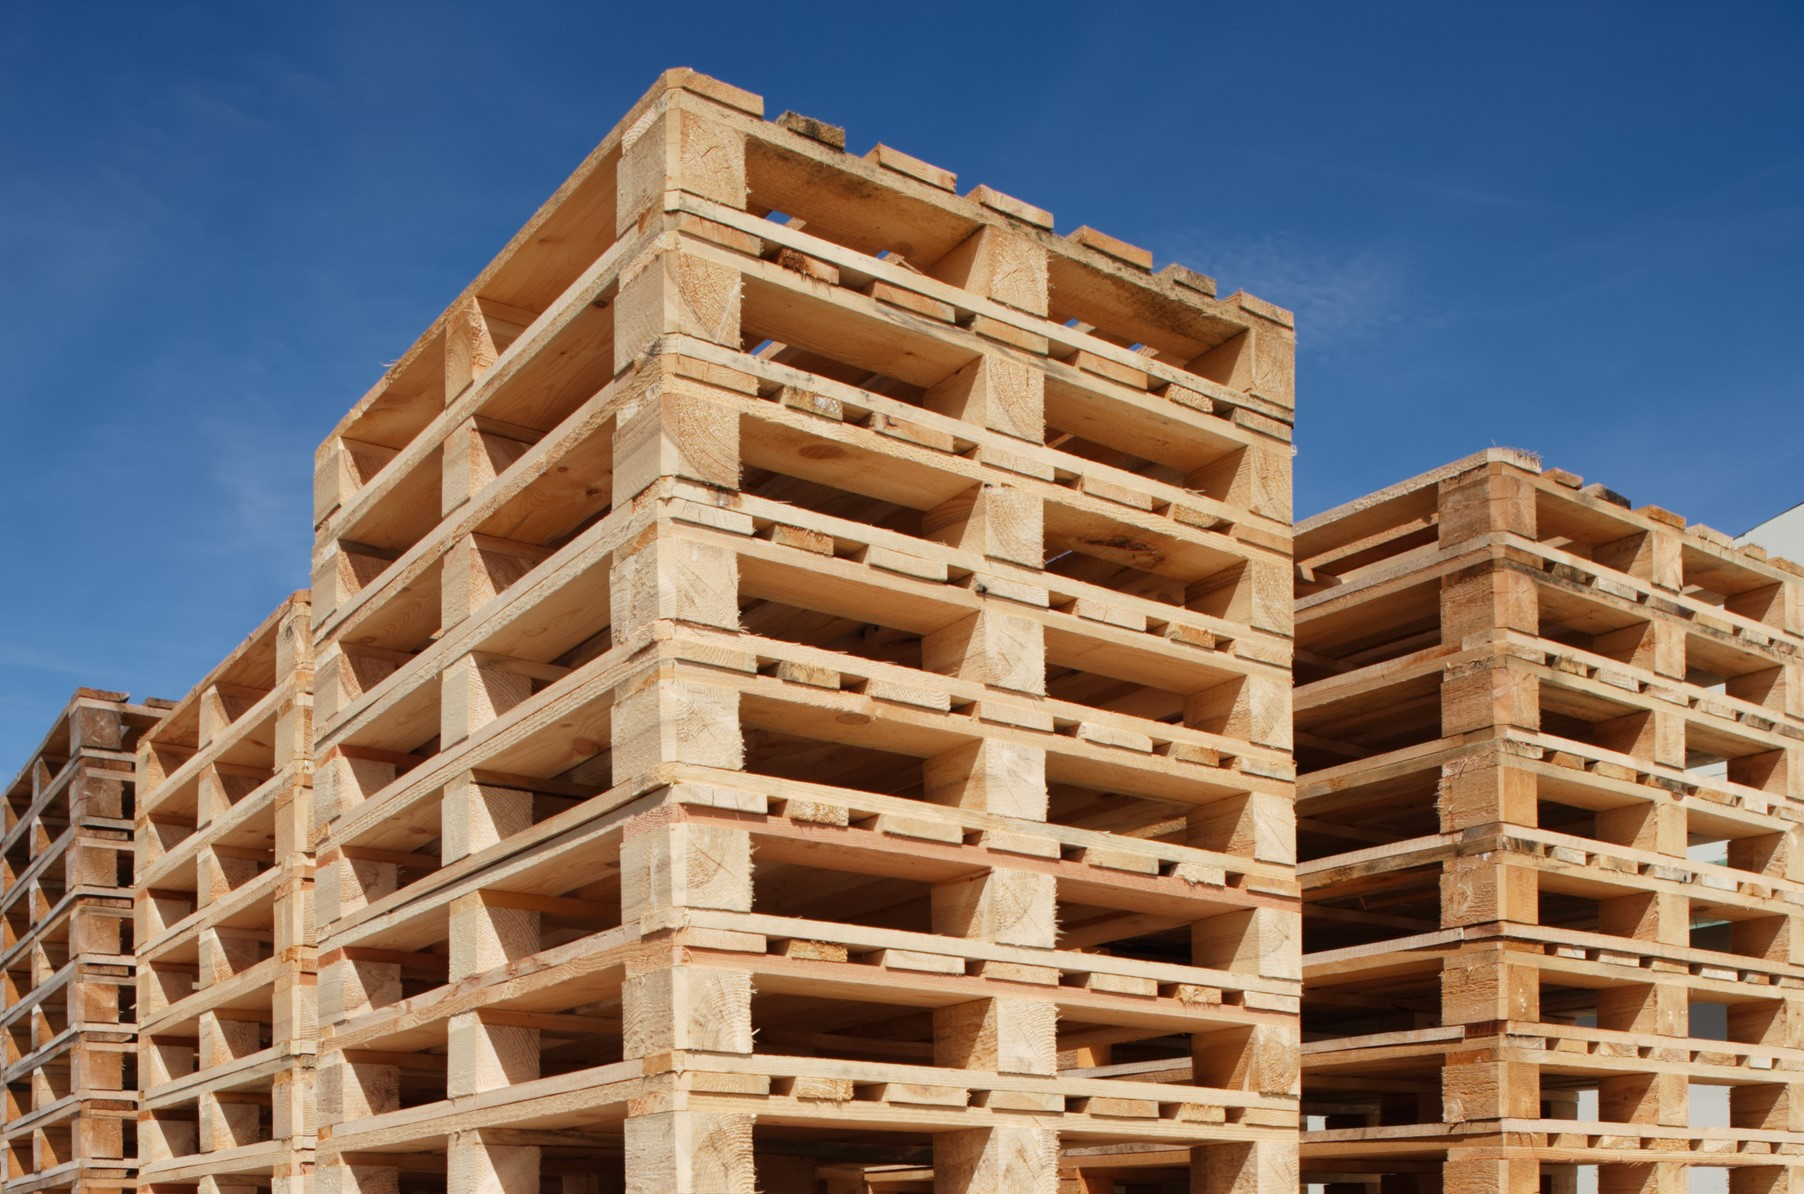 new wooden pallets southampton